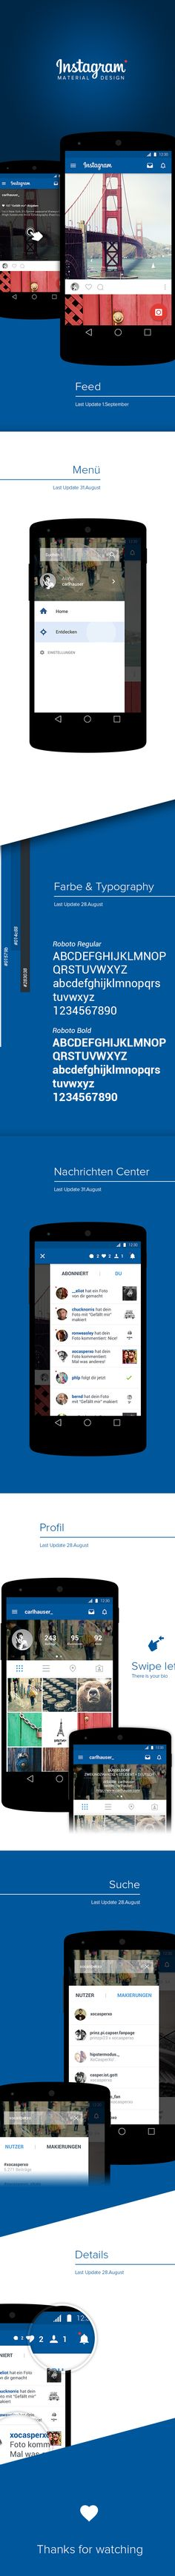 Another take at #MaterialDesign, this time by Carl Hauser. This Instagram #redesign looks pretty neat!